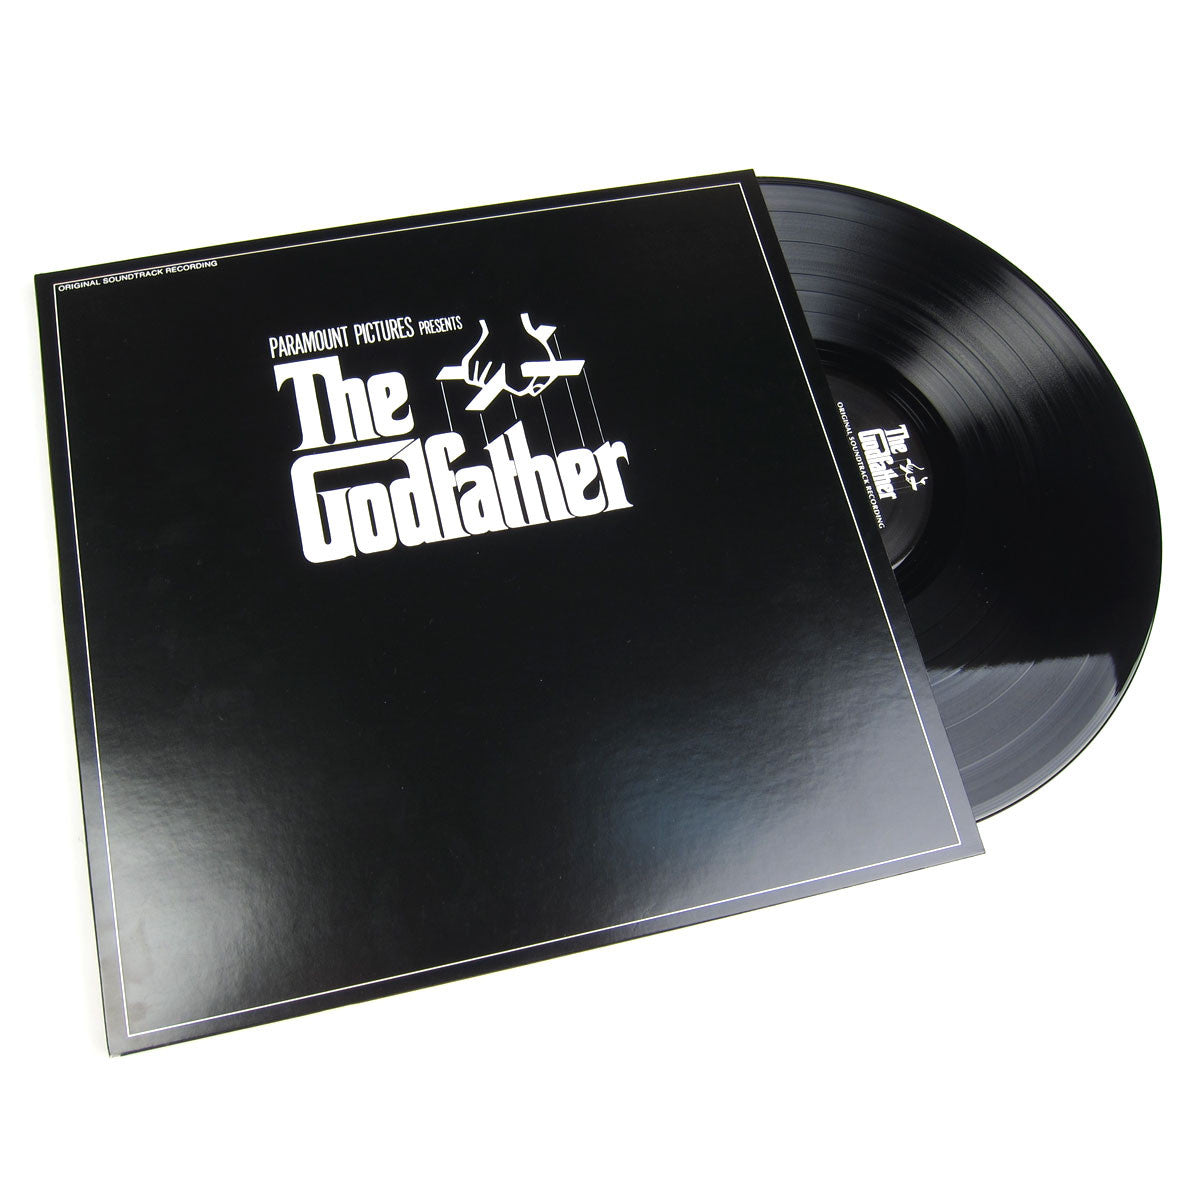 Nino Rota: The Godfather Original Soundtrack Recording (180g) Vinyl LP